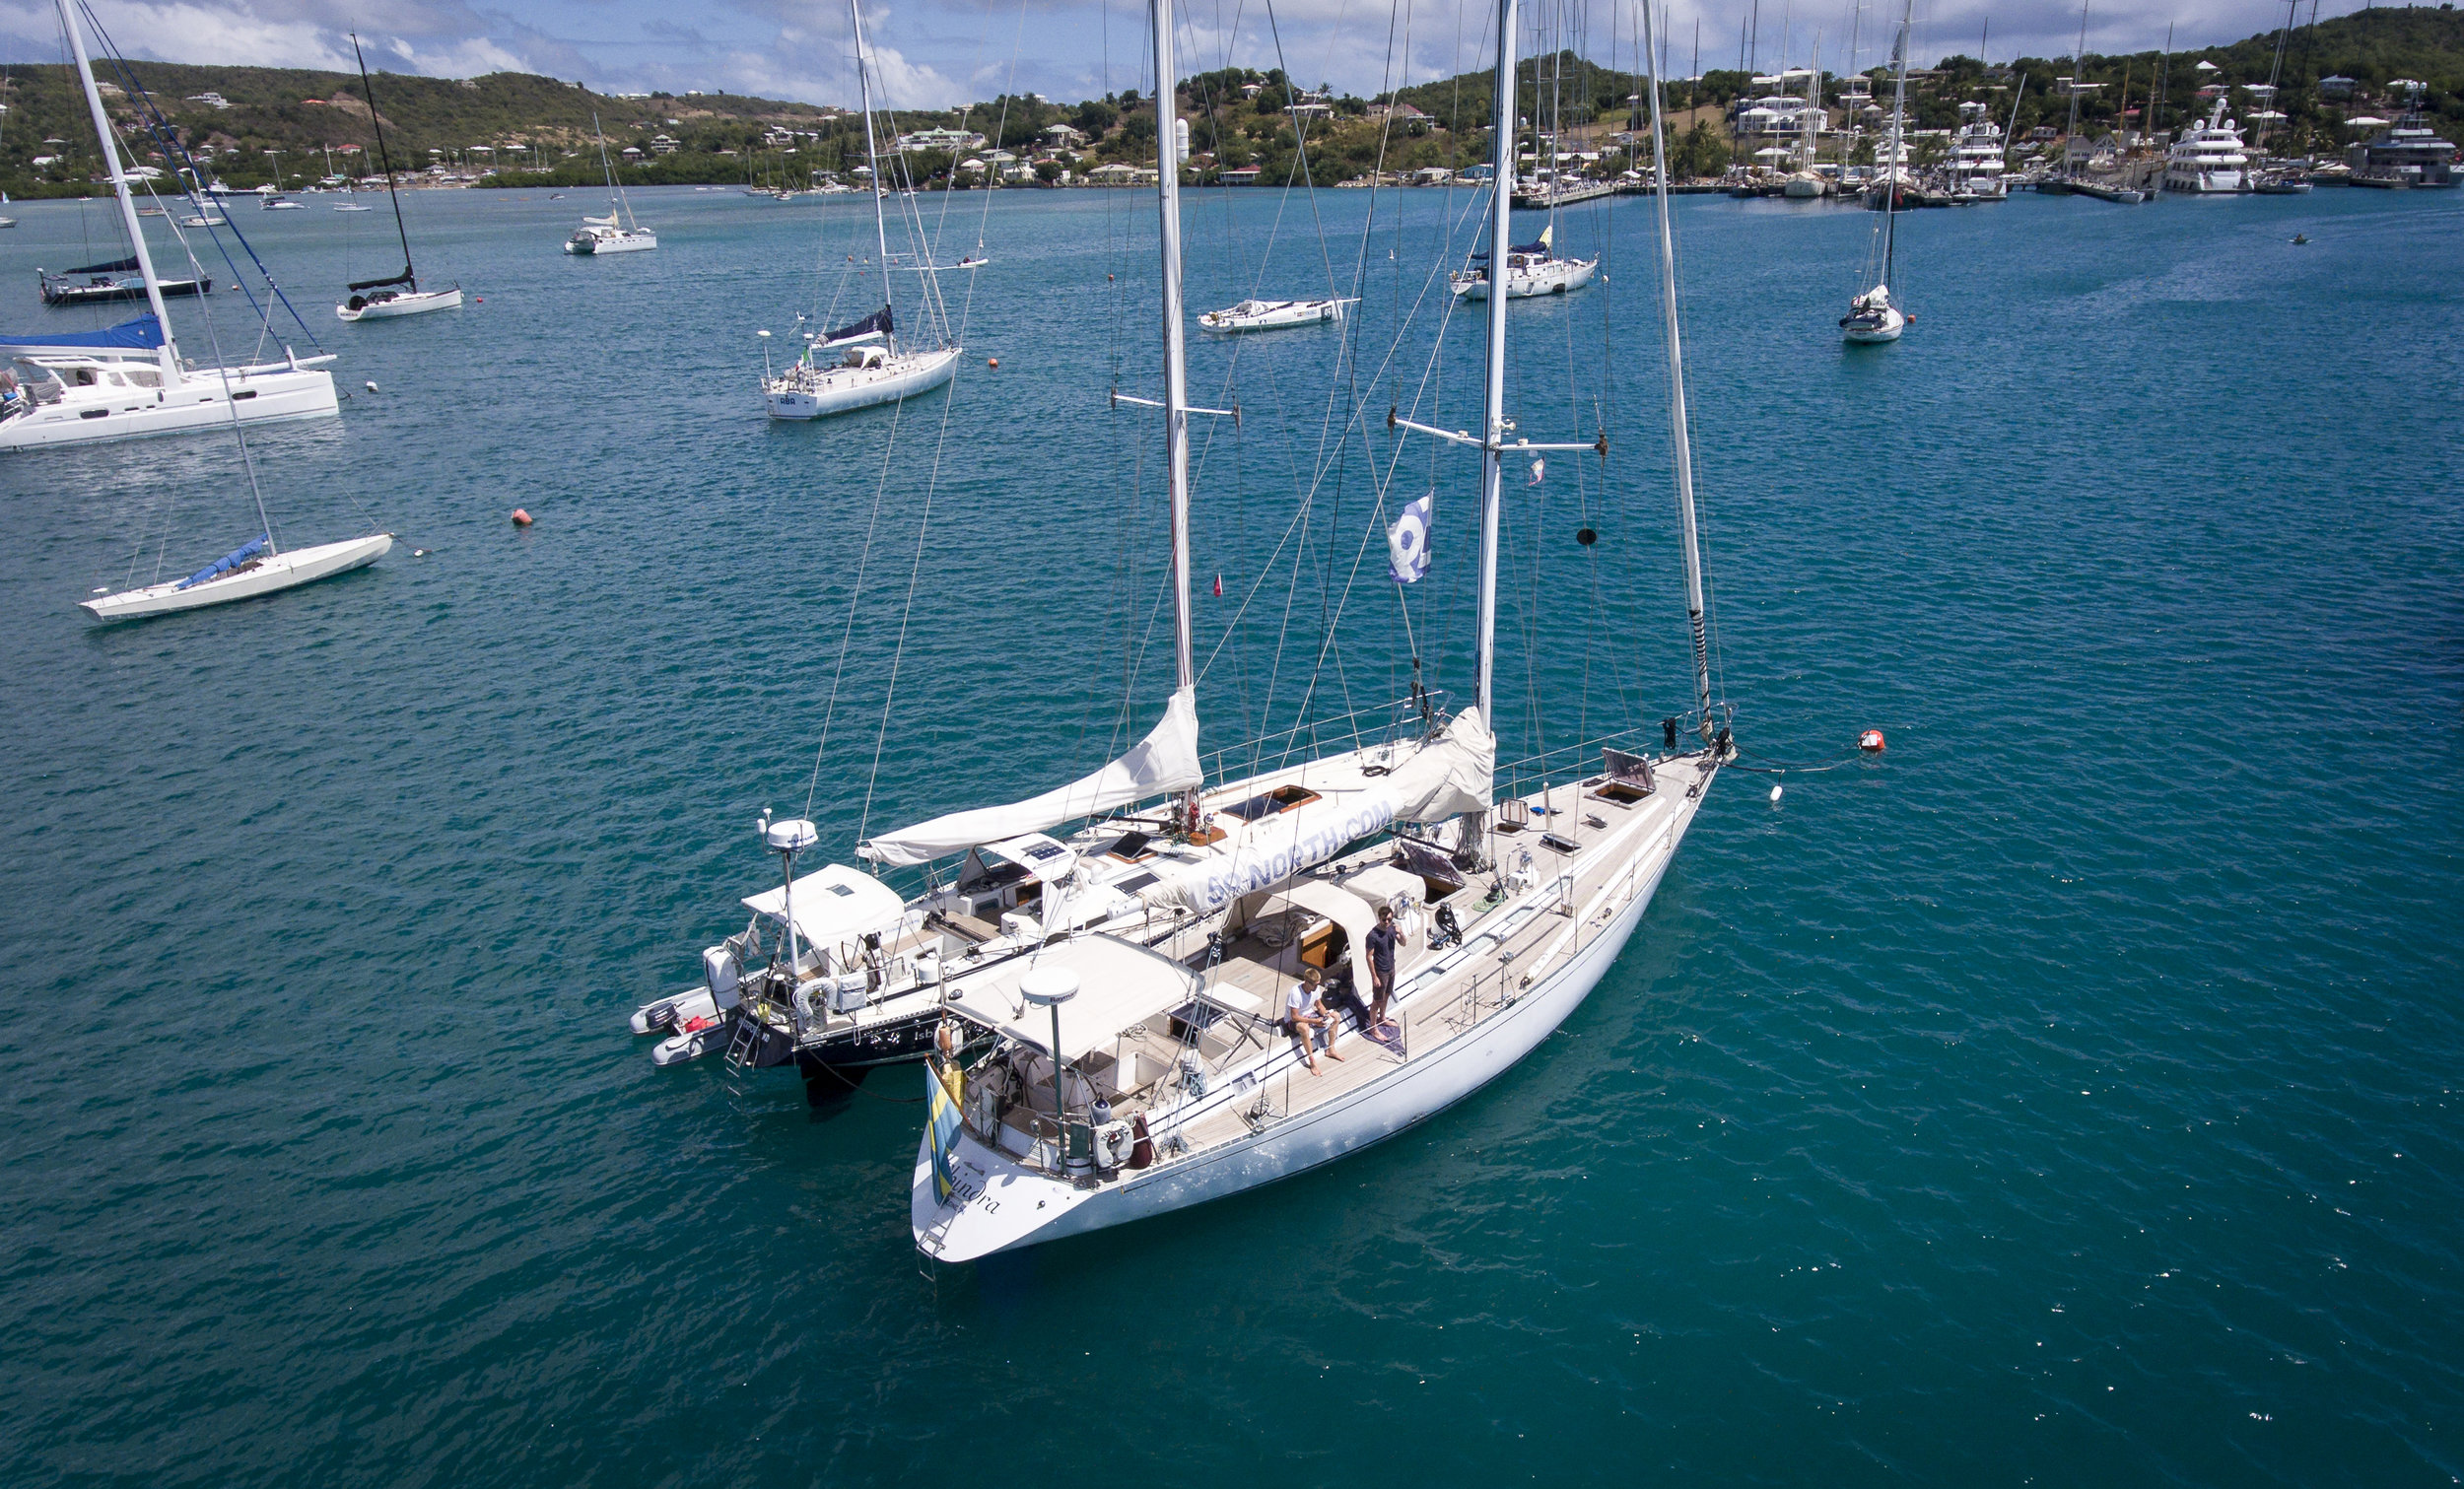 ISBJORN & ICE BEAR, our new Swan 59, together at last in Antigua!